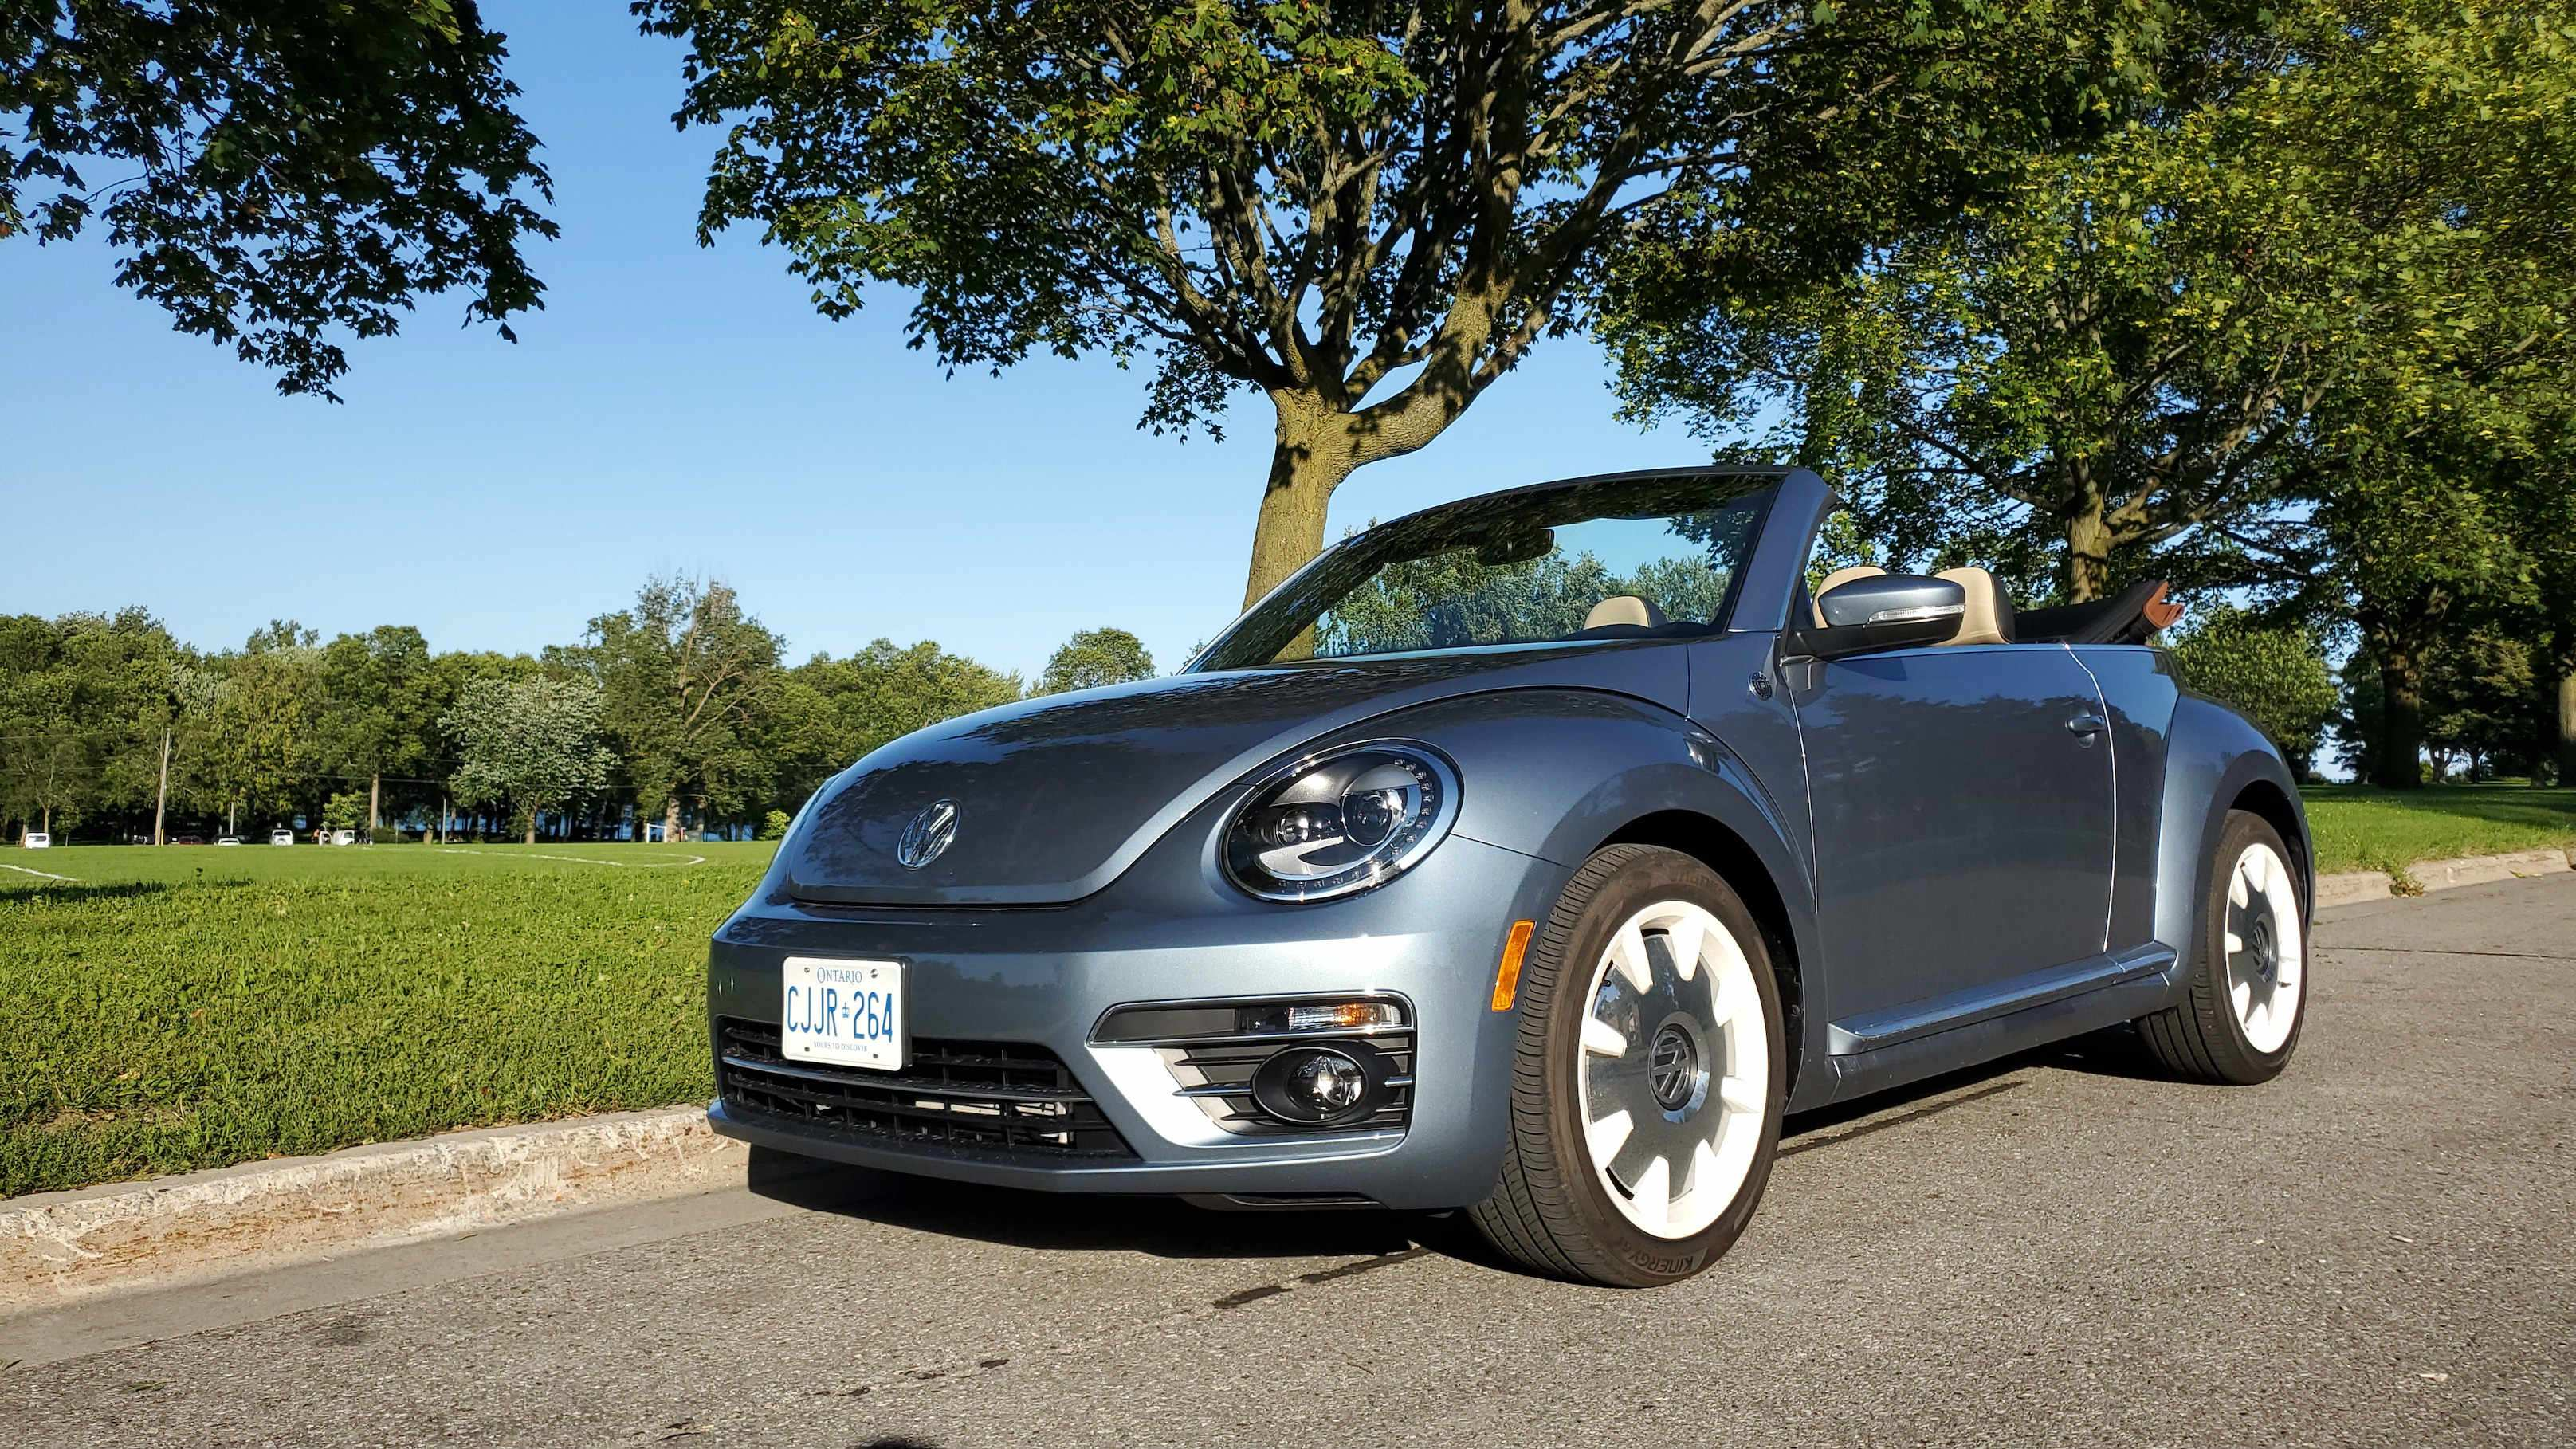 21 Best Best Volkswagen Beetle 2019 Price Exterior And Interior Review Price